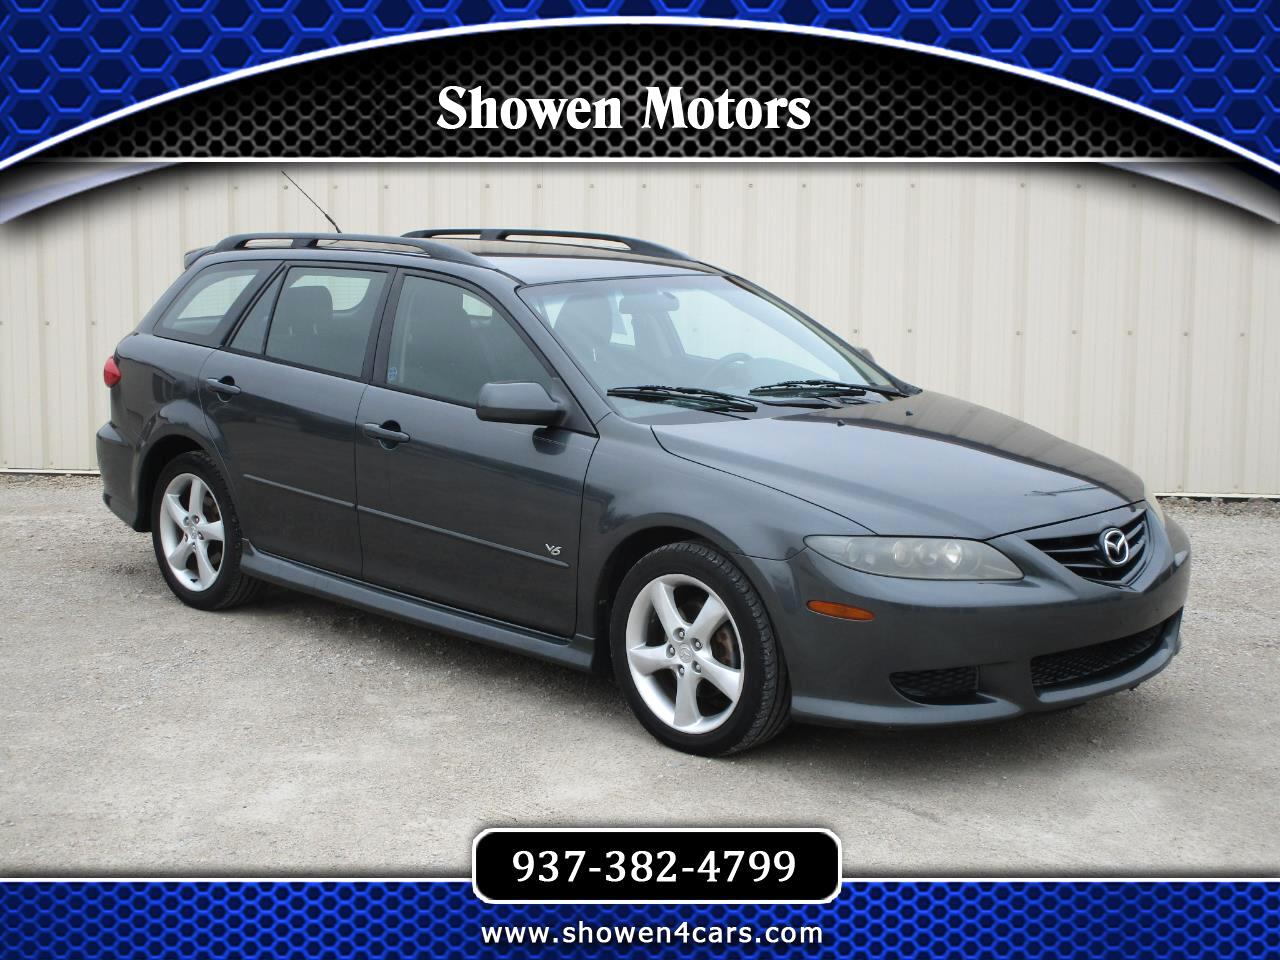 Used 2005 Mazda MAZDA6 Sport Wagon S For Sale In